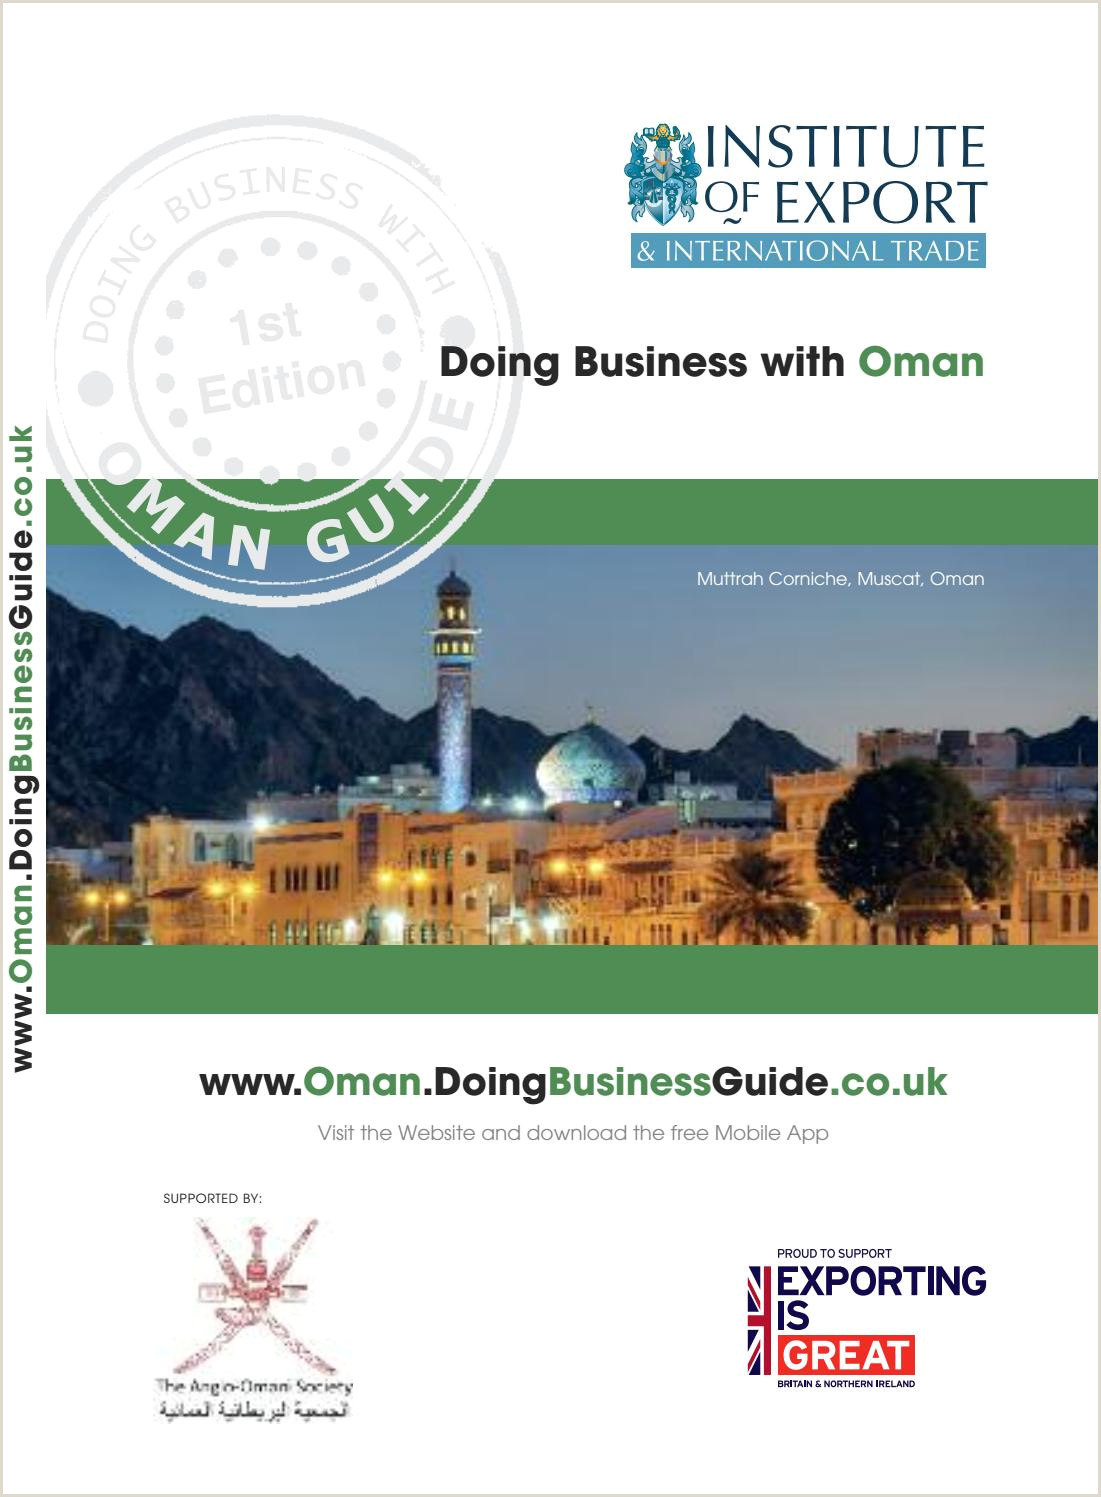 Unique Business Cards Engineering Doing Business With Oman Guide By Doing Business Guides Issuu